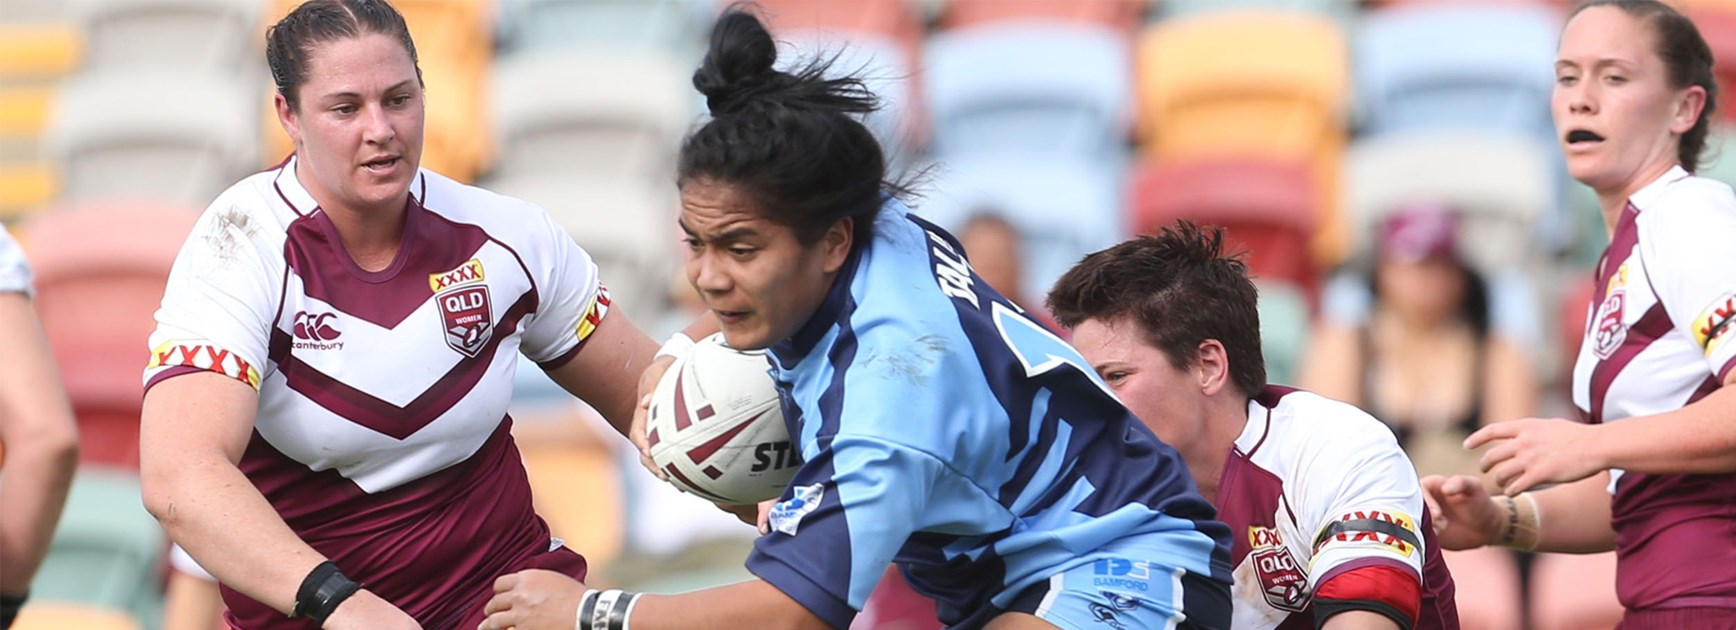 Simaima Tau takes a charge for the women's NSW team against Queensland on Saturday.